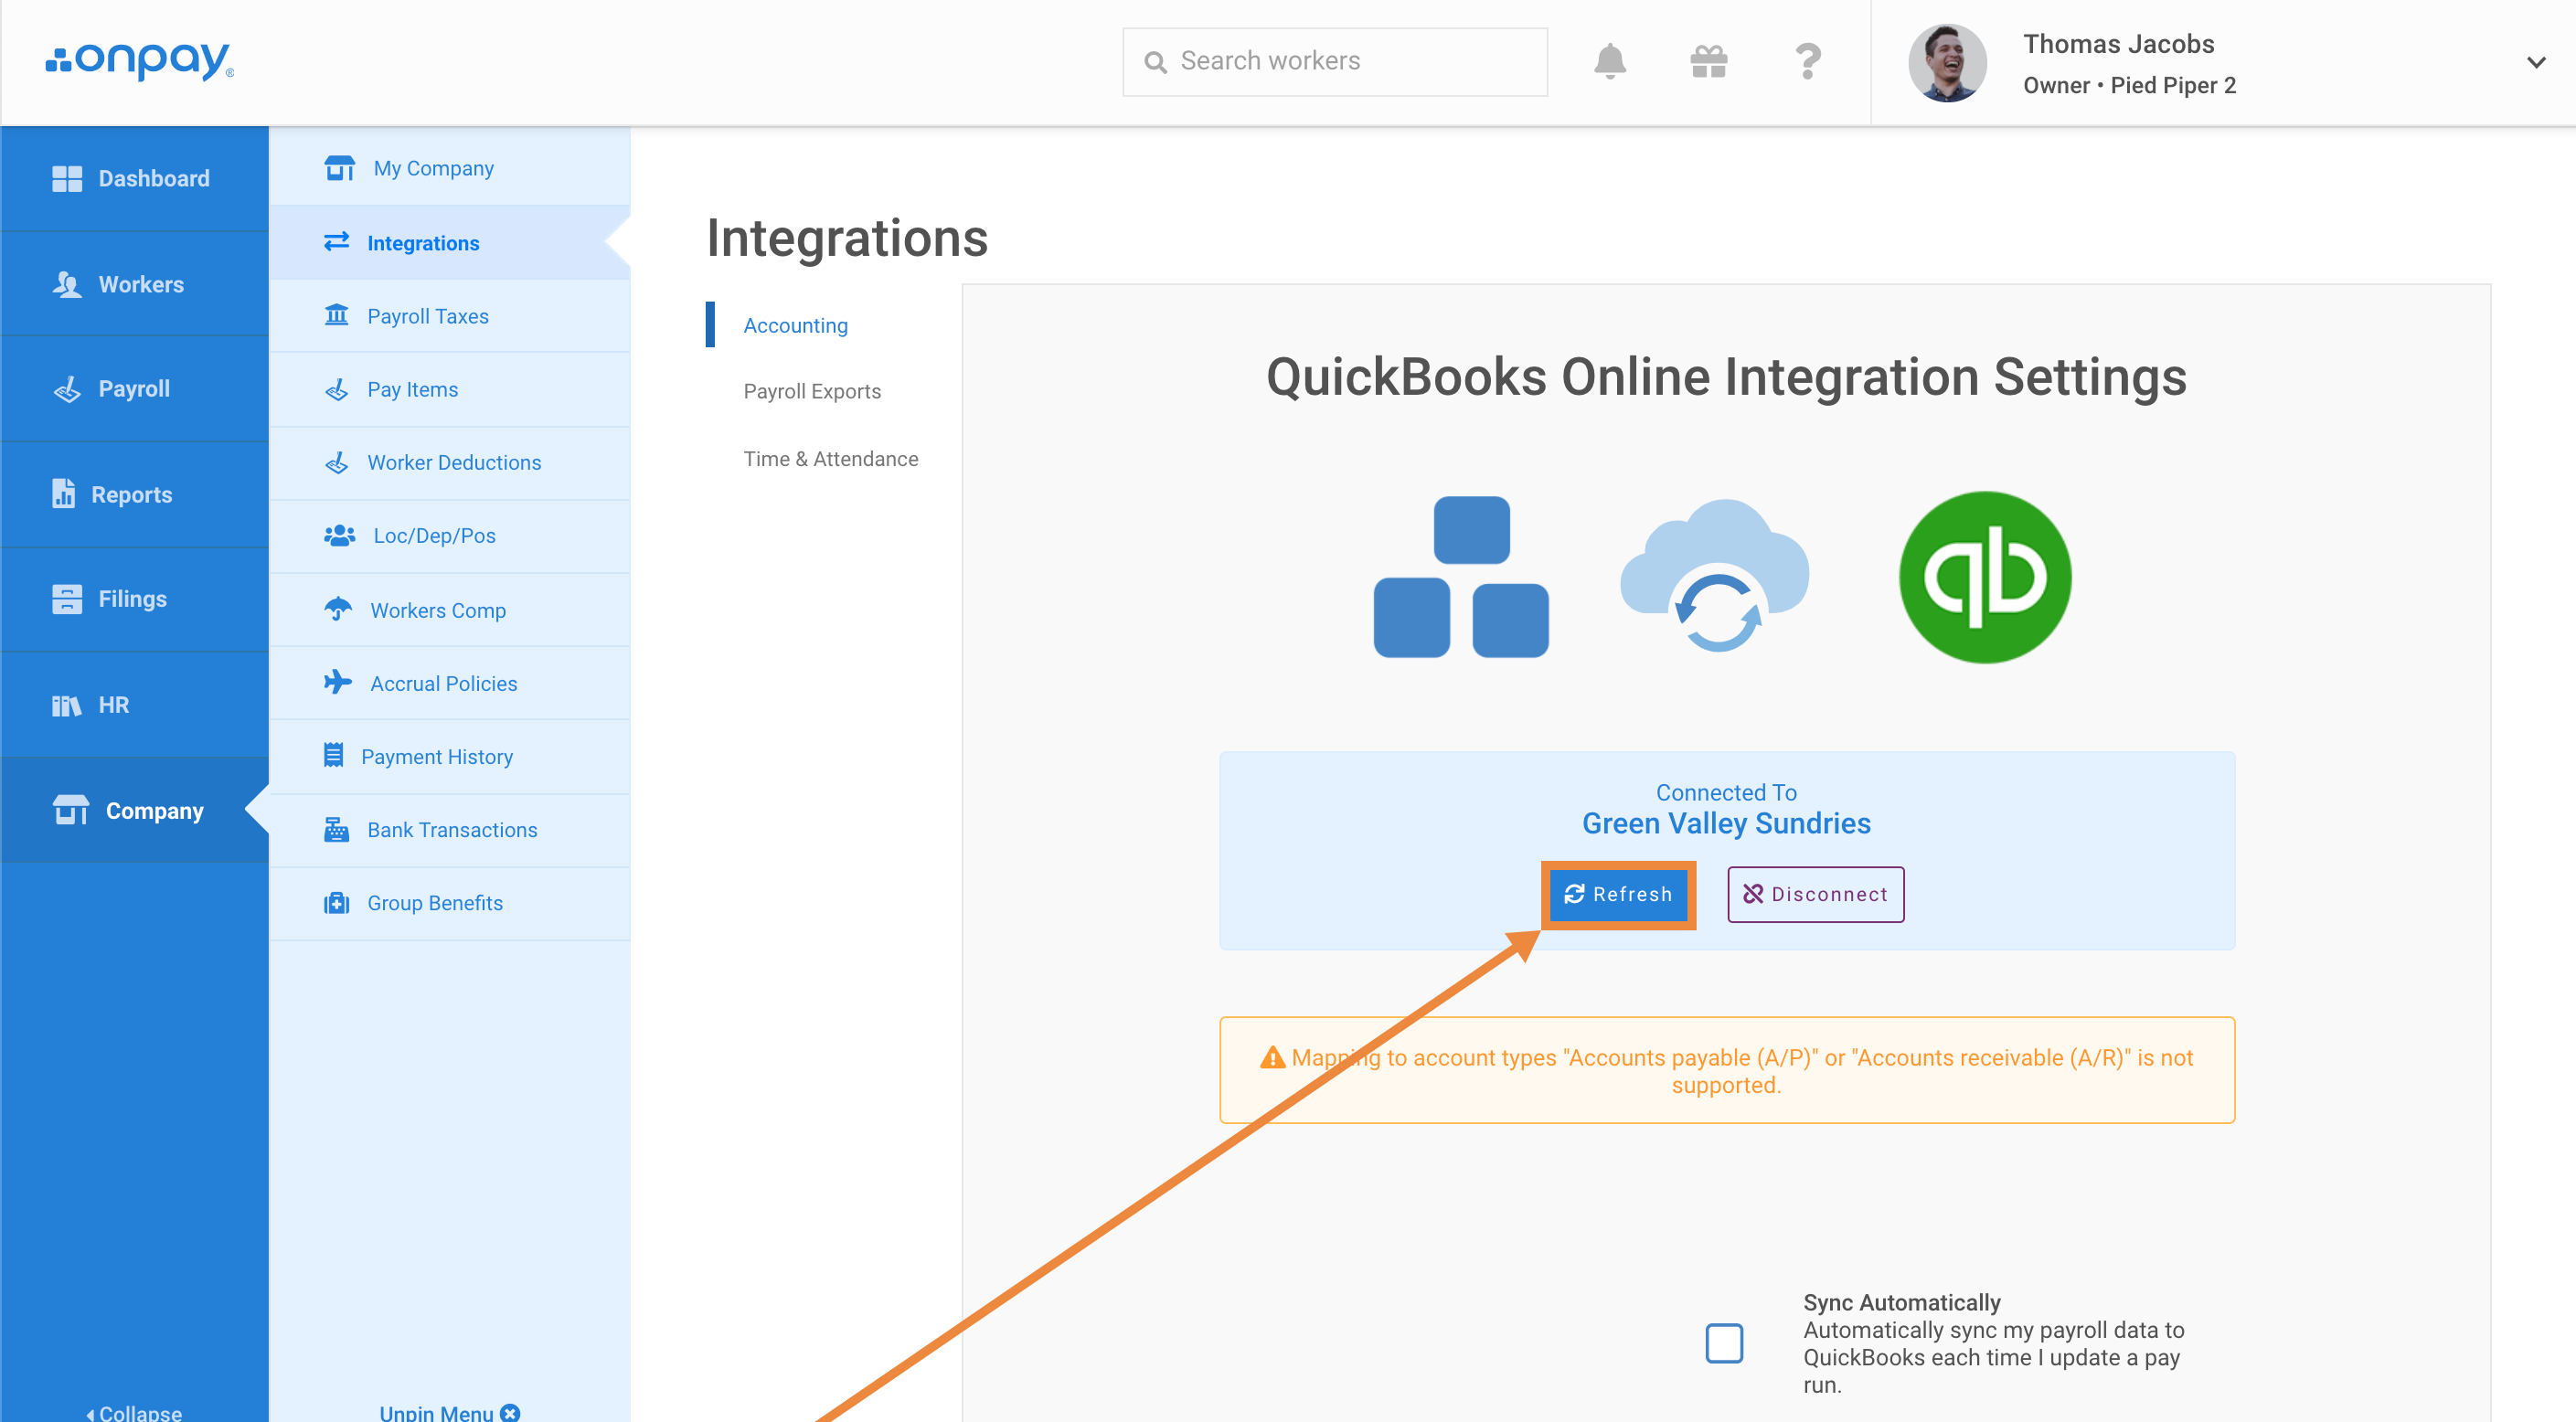 How to set up your QuickBooks Online integration - Help Center